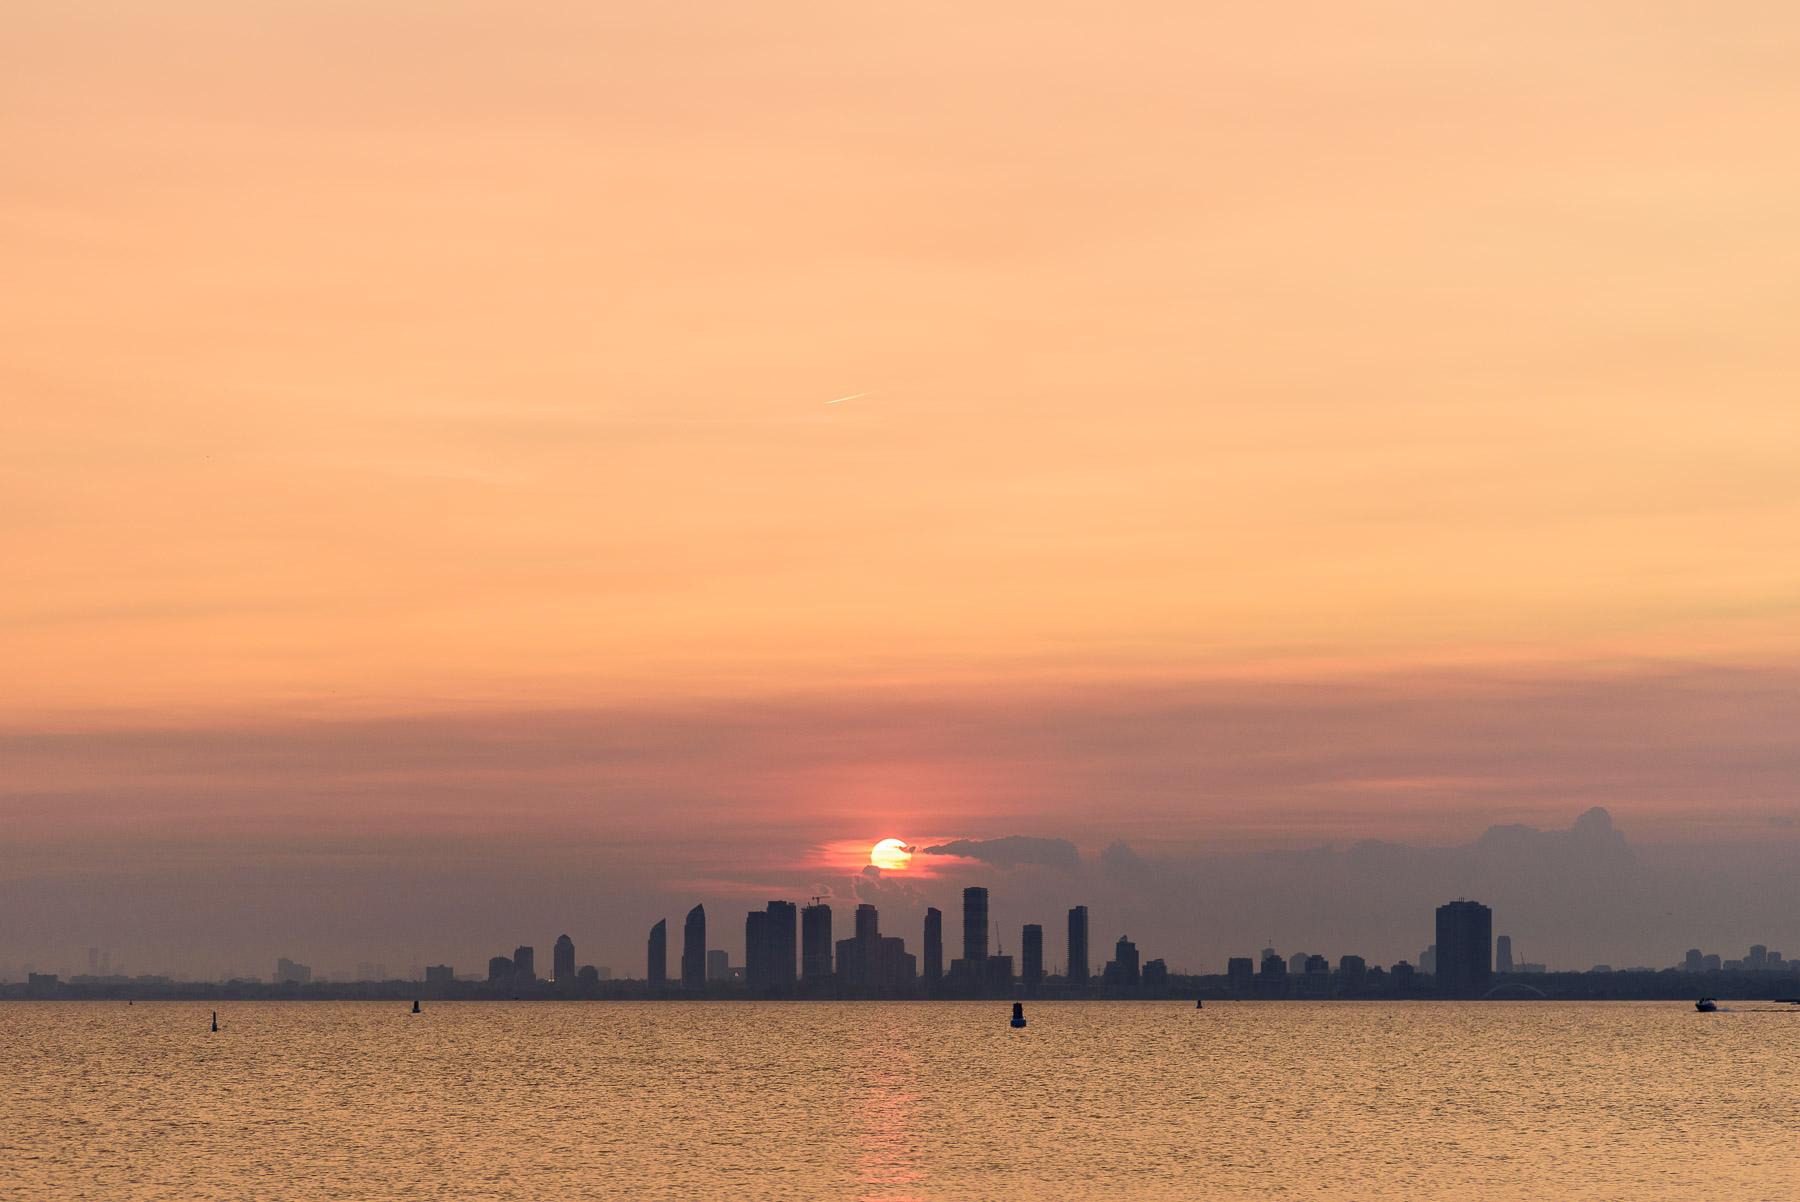 Sunset over Etobicoke